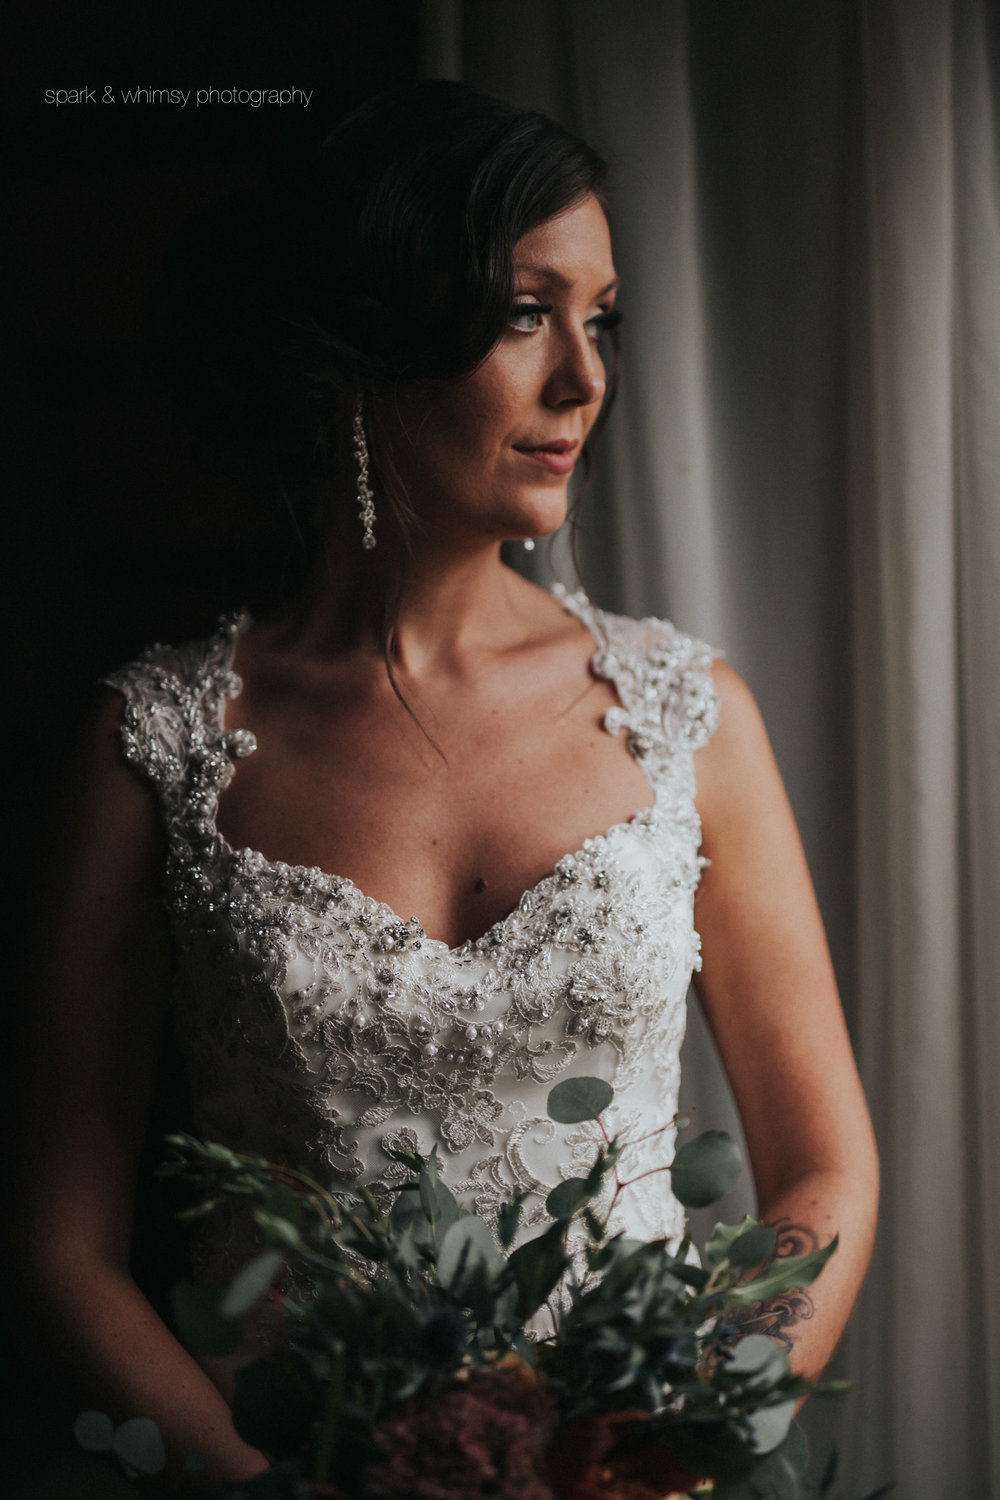 Bridal Portrait | Wedding Photographer Victoria BC